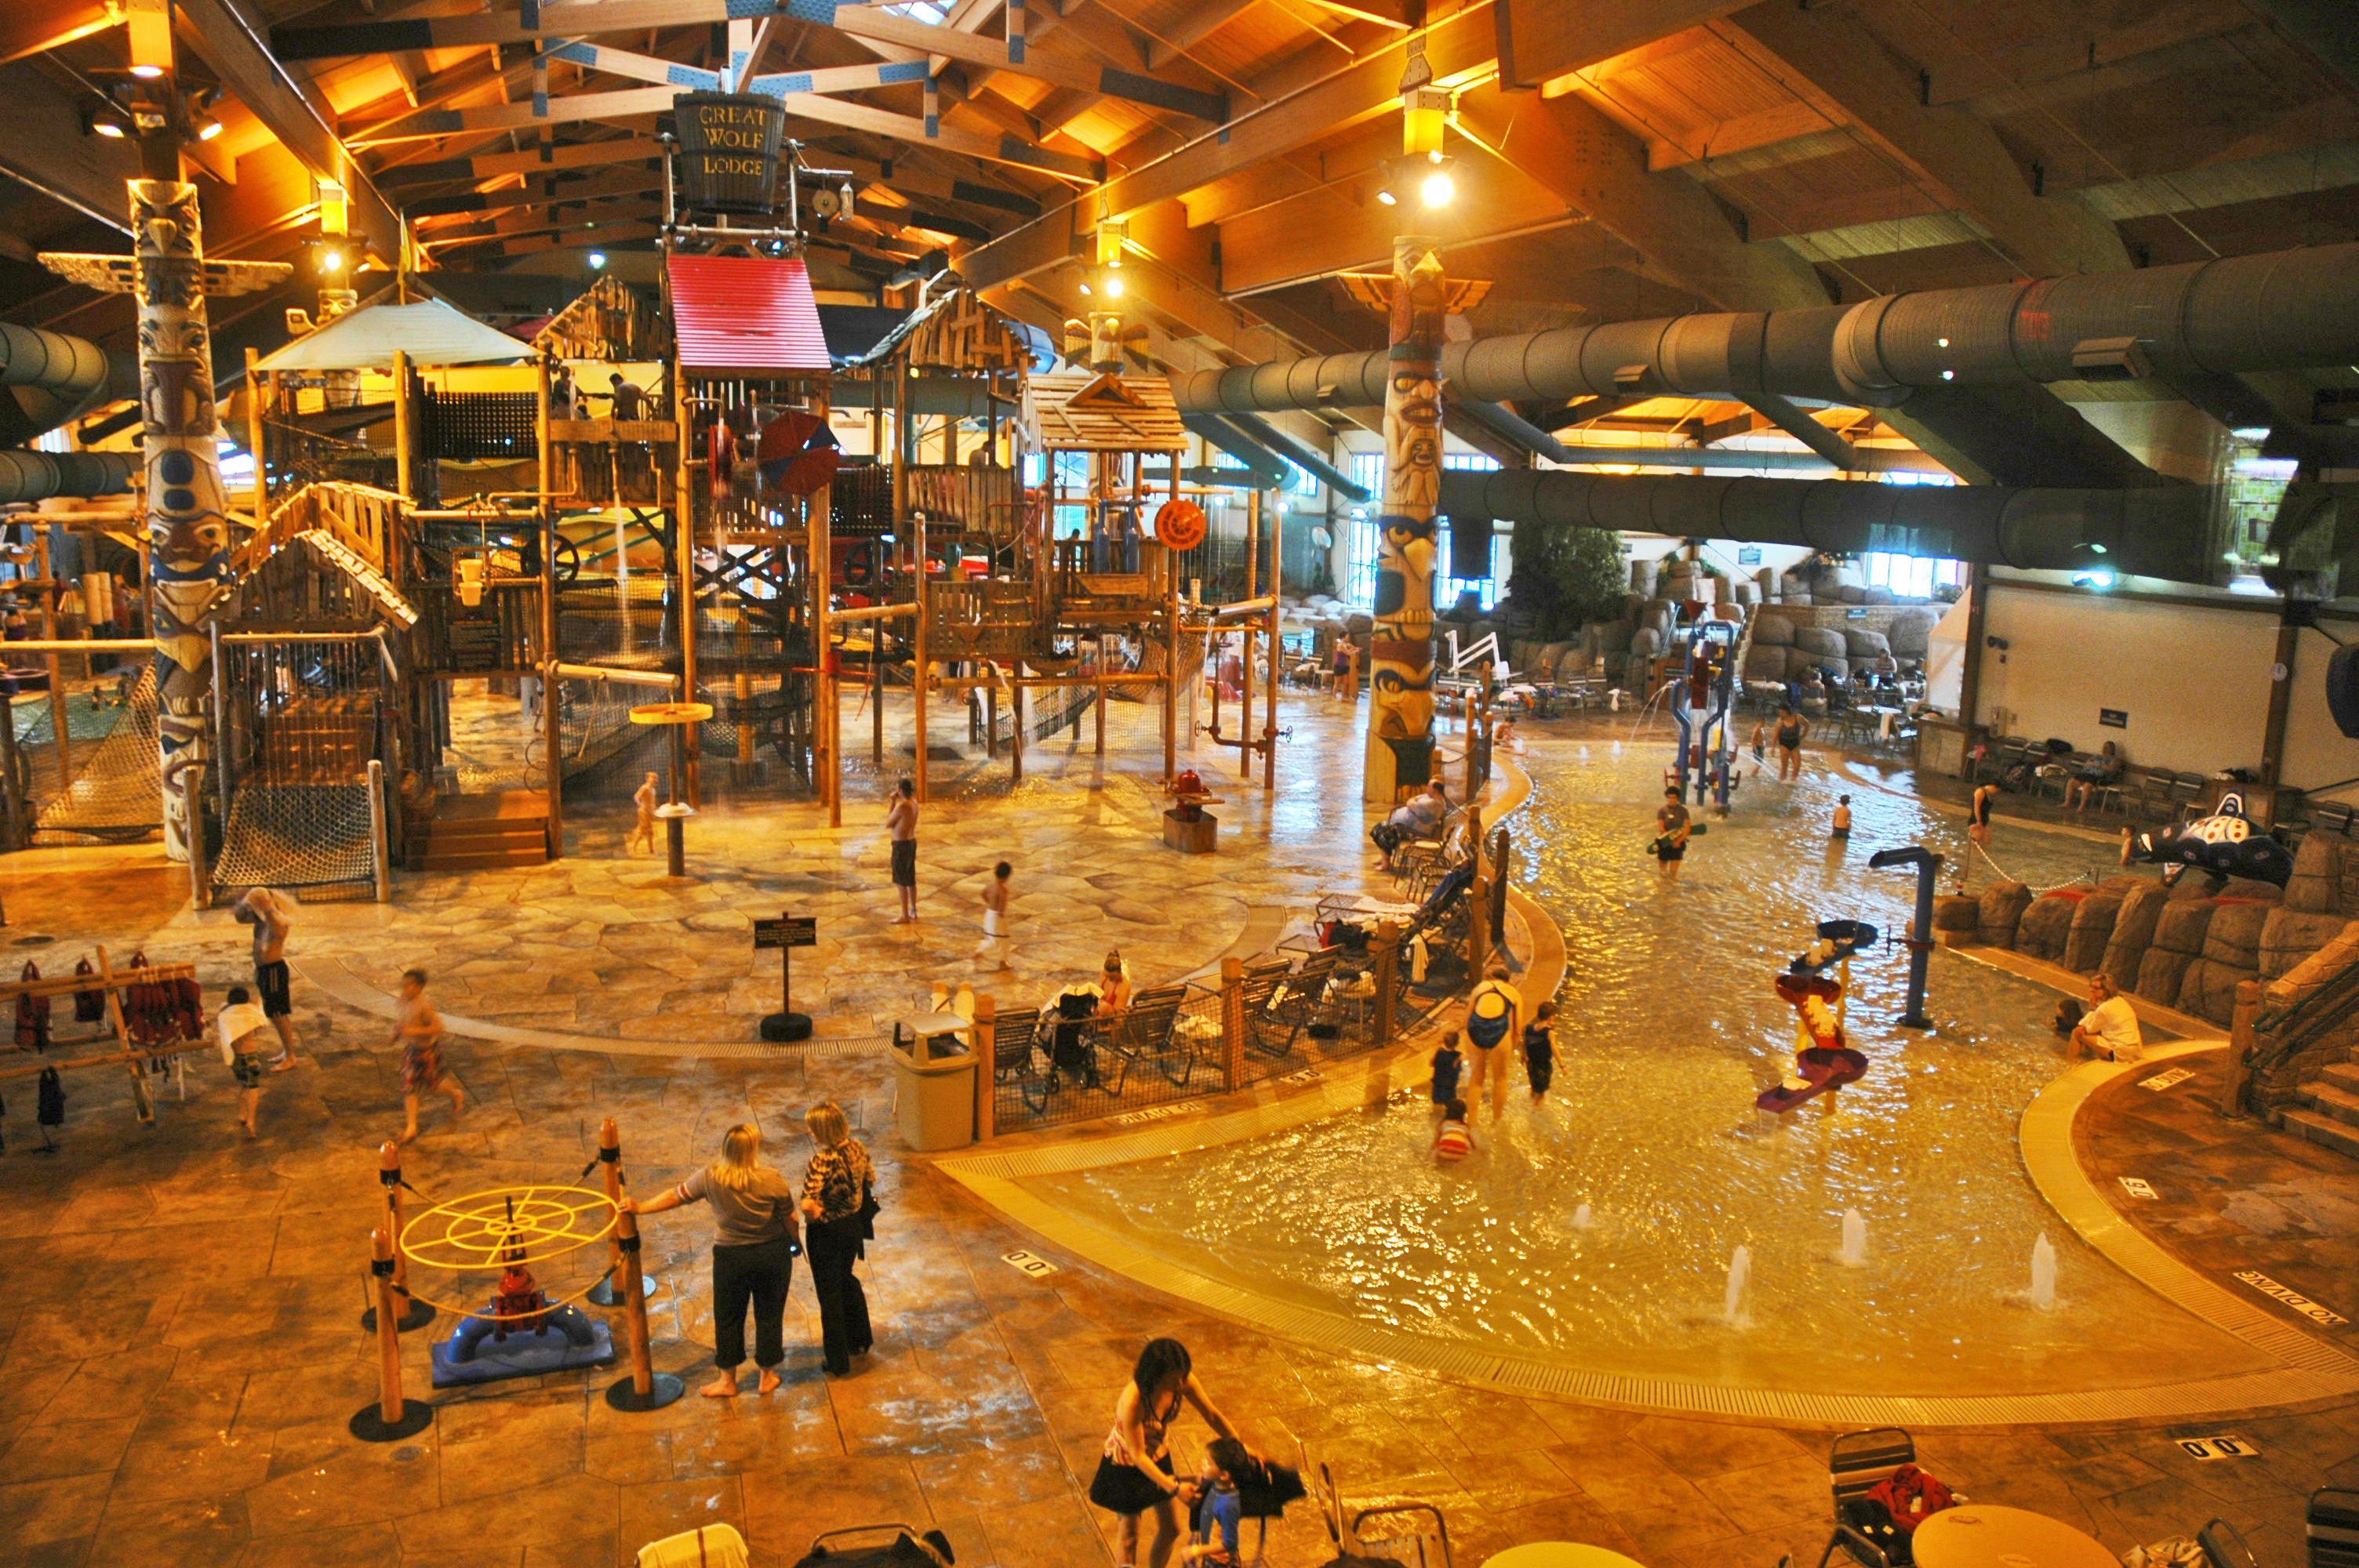 If I had any doubts about summer fun wearing my kids out, yesterday sealed the deal. We were invited to a media day at Great Wolf Lodge and we took full advantage of the activities by arriving at and not leaving until close to PM- and we still weren't able to fit all of it in!